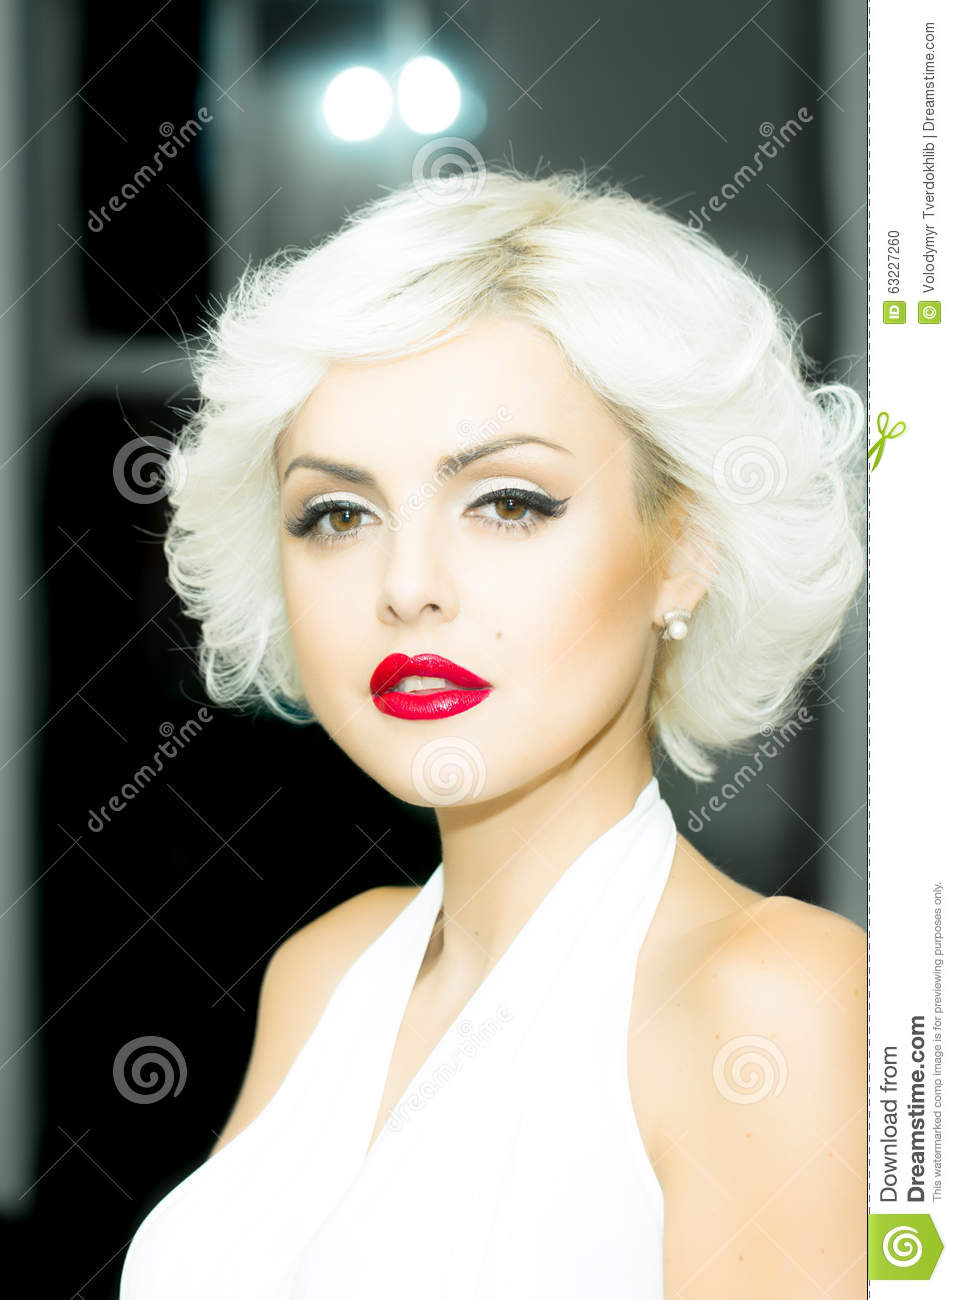 Can look young blonde monroe idea